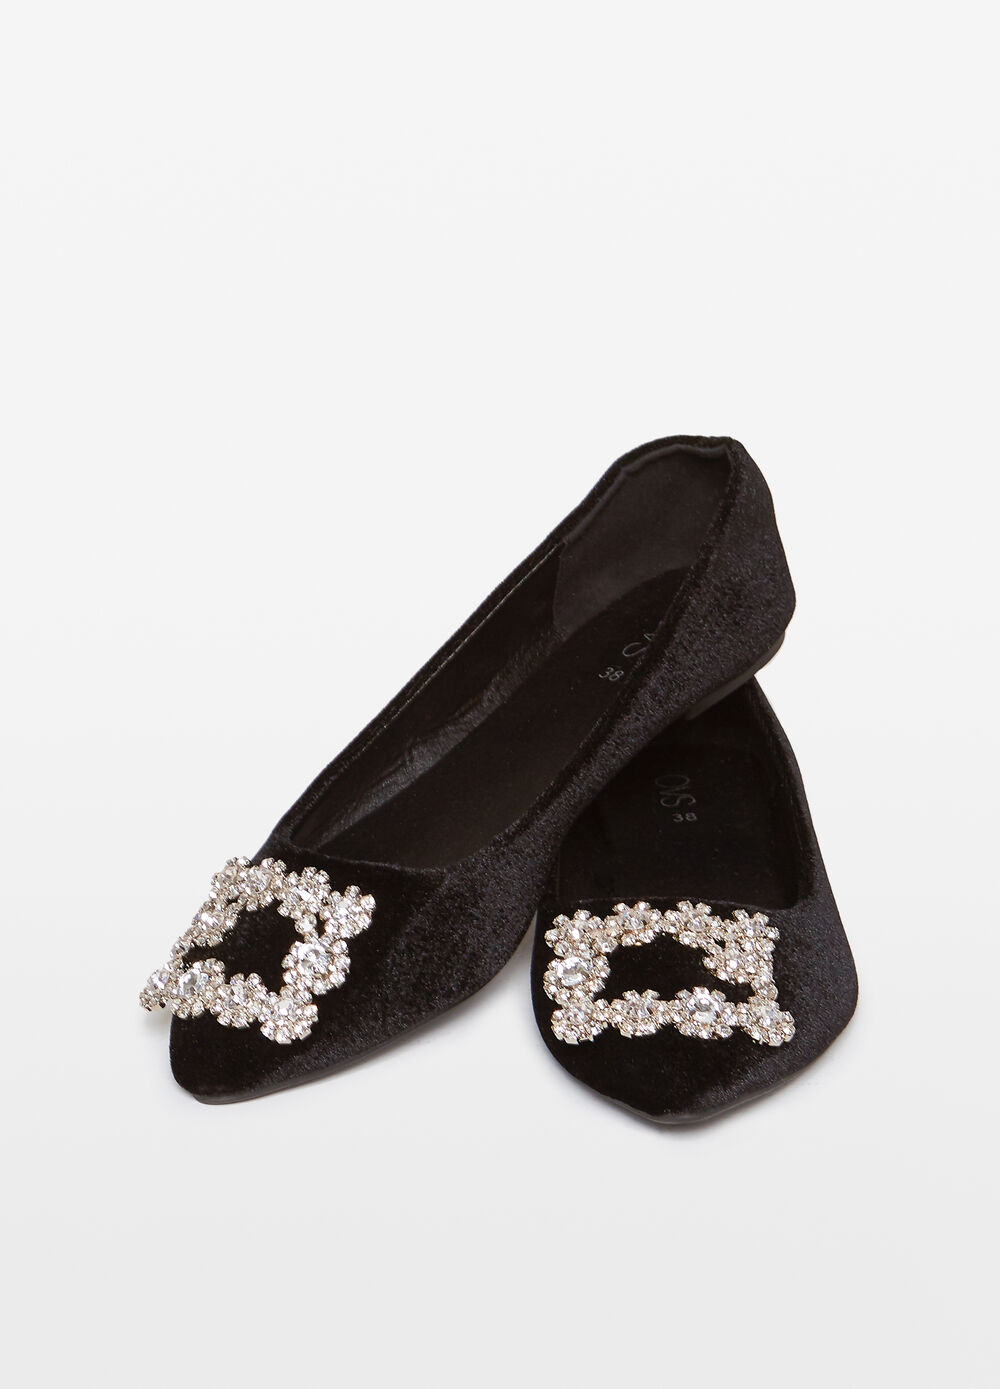 Pointed ballerina flats with diamantés